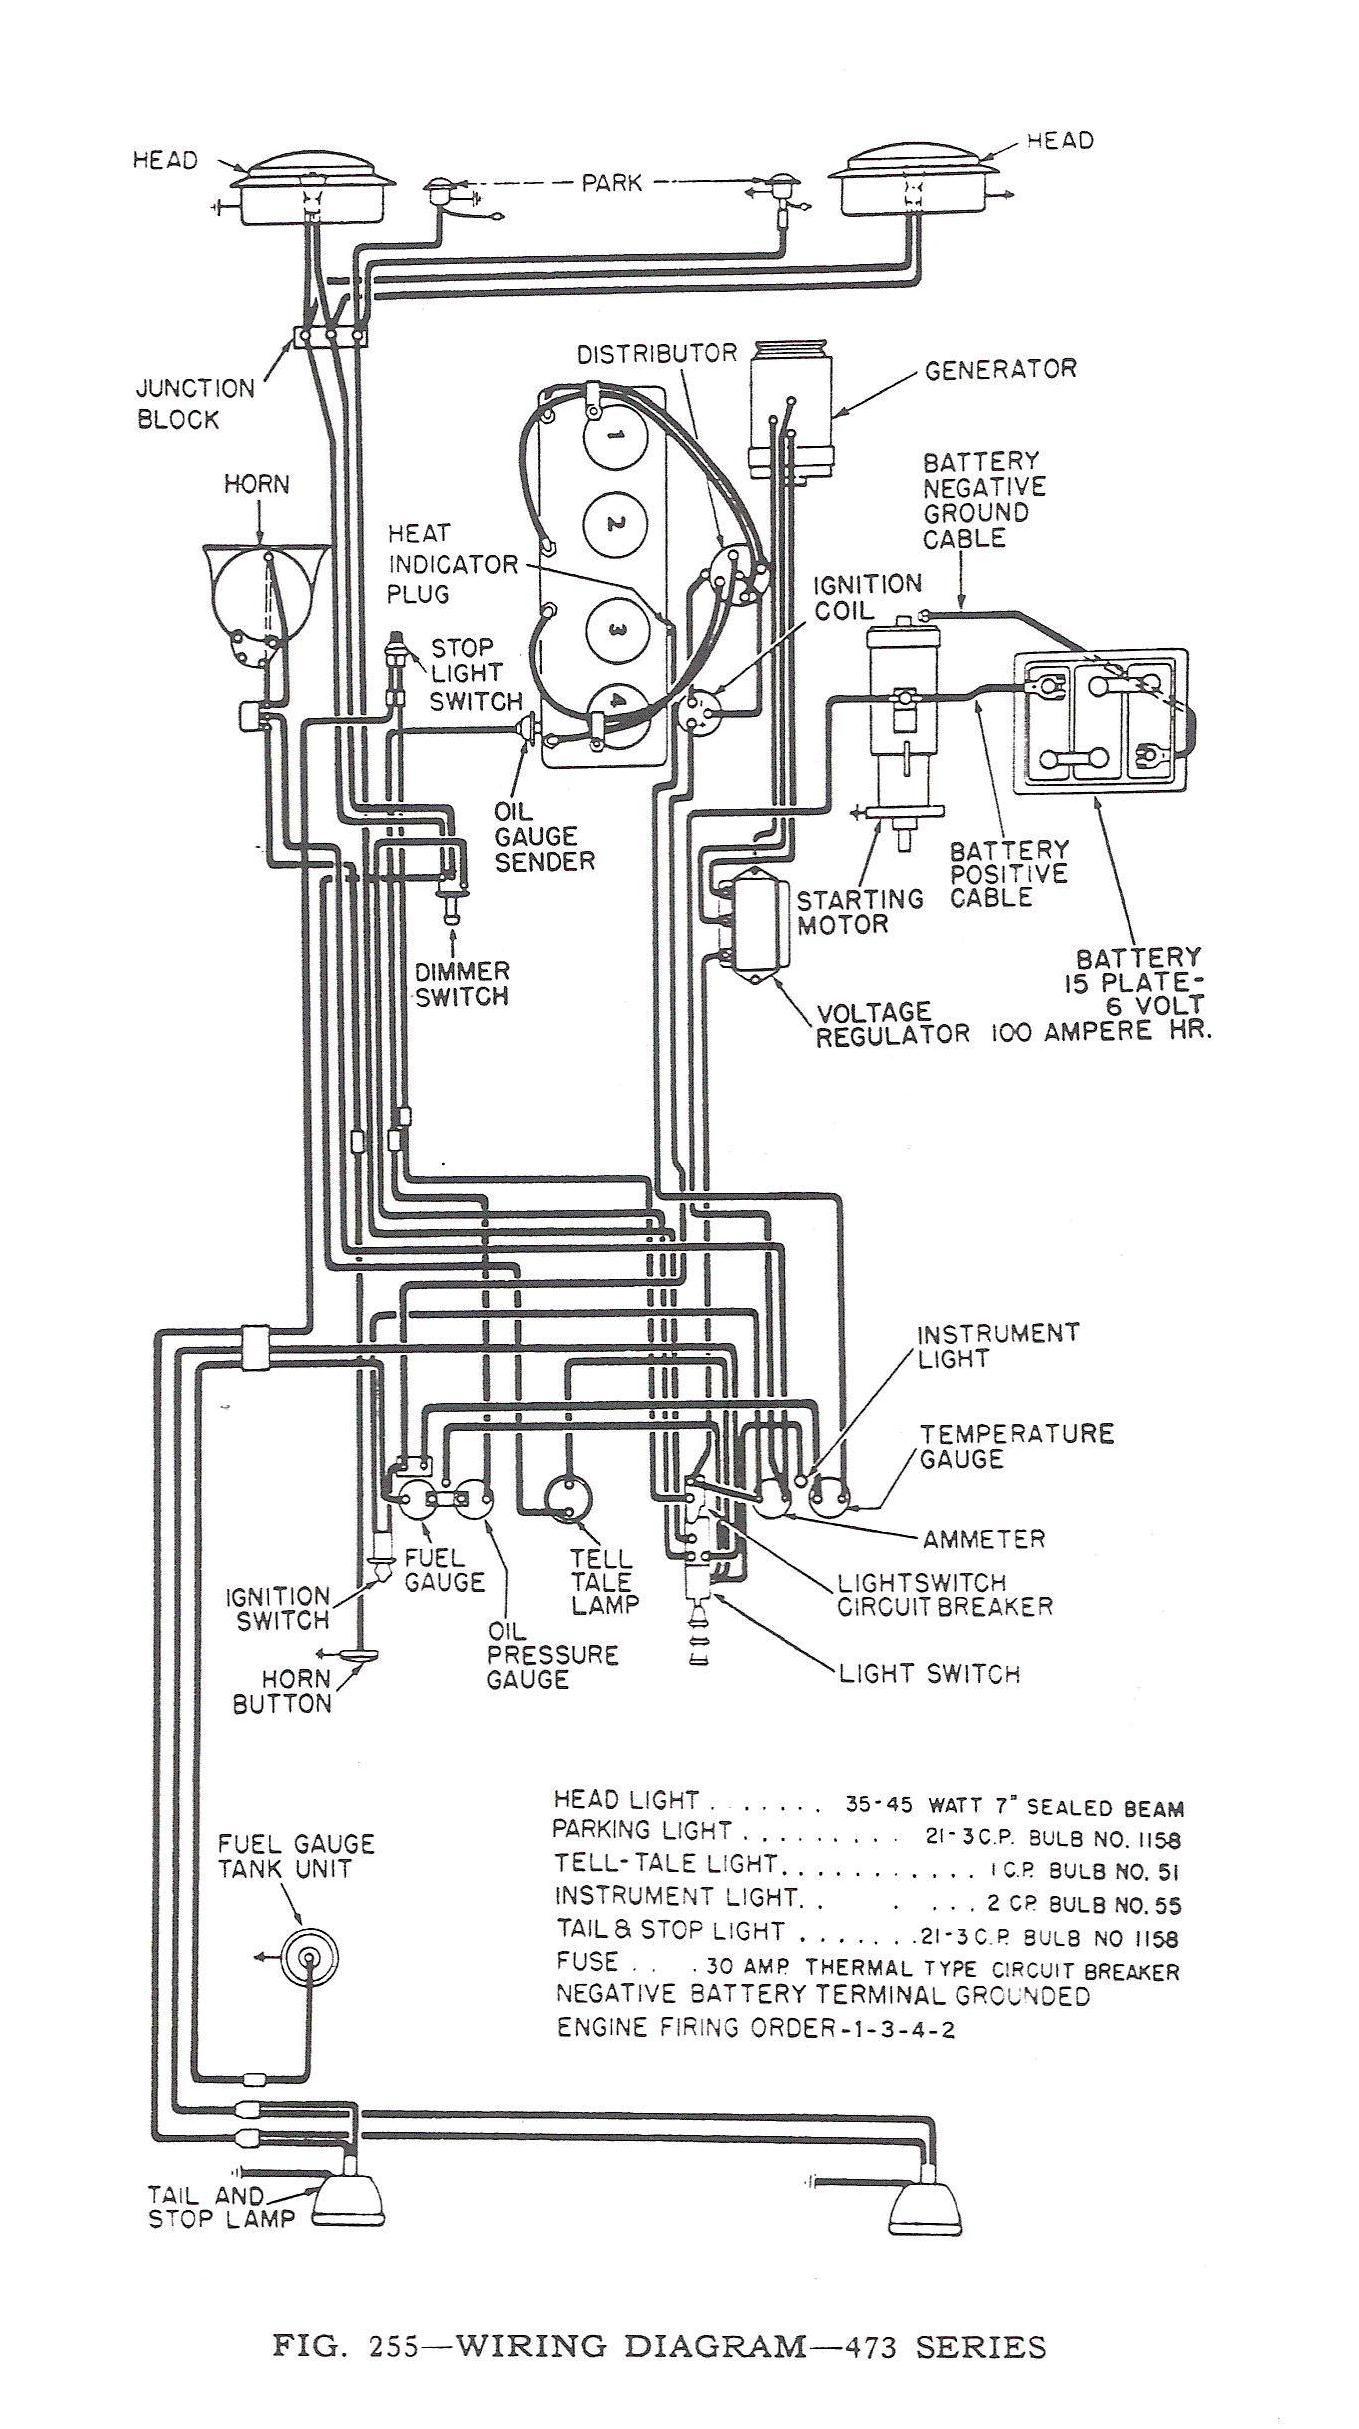 1952 Willys Wagon Wiring Diagram Library Jeep Cj7 Fuse Series 473 Diagrams Google Search Trucks Life